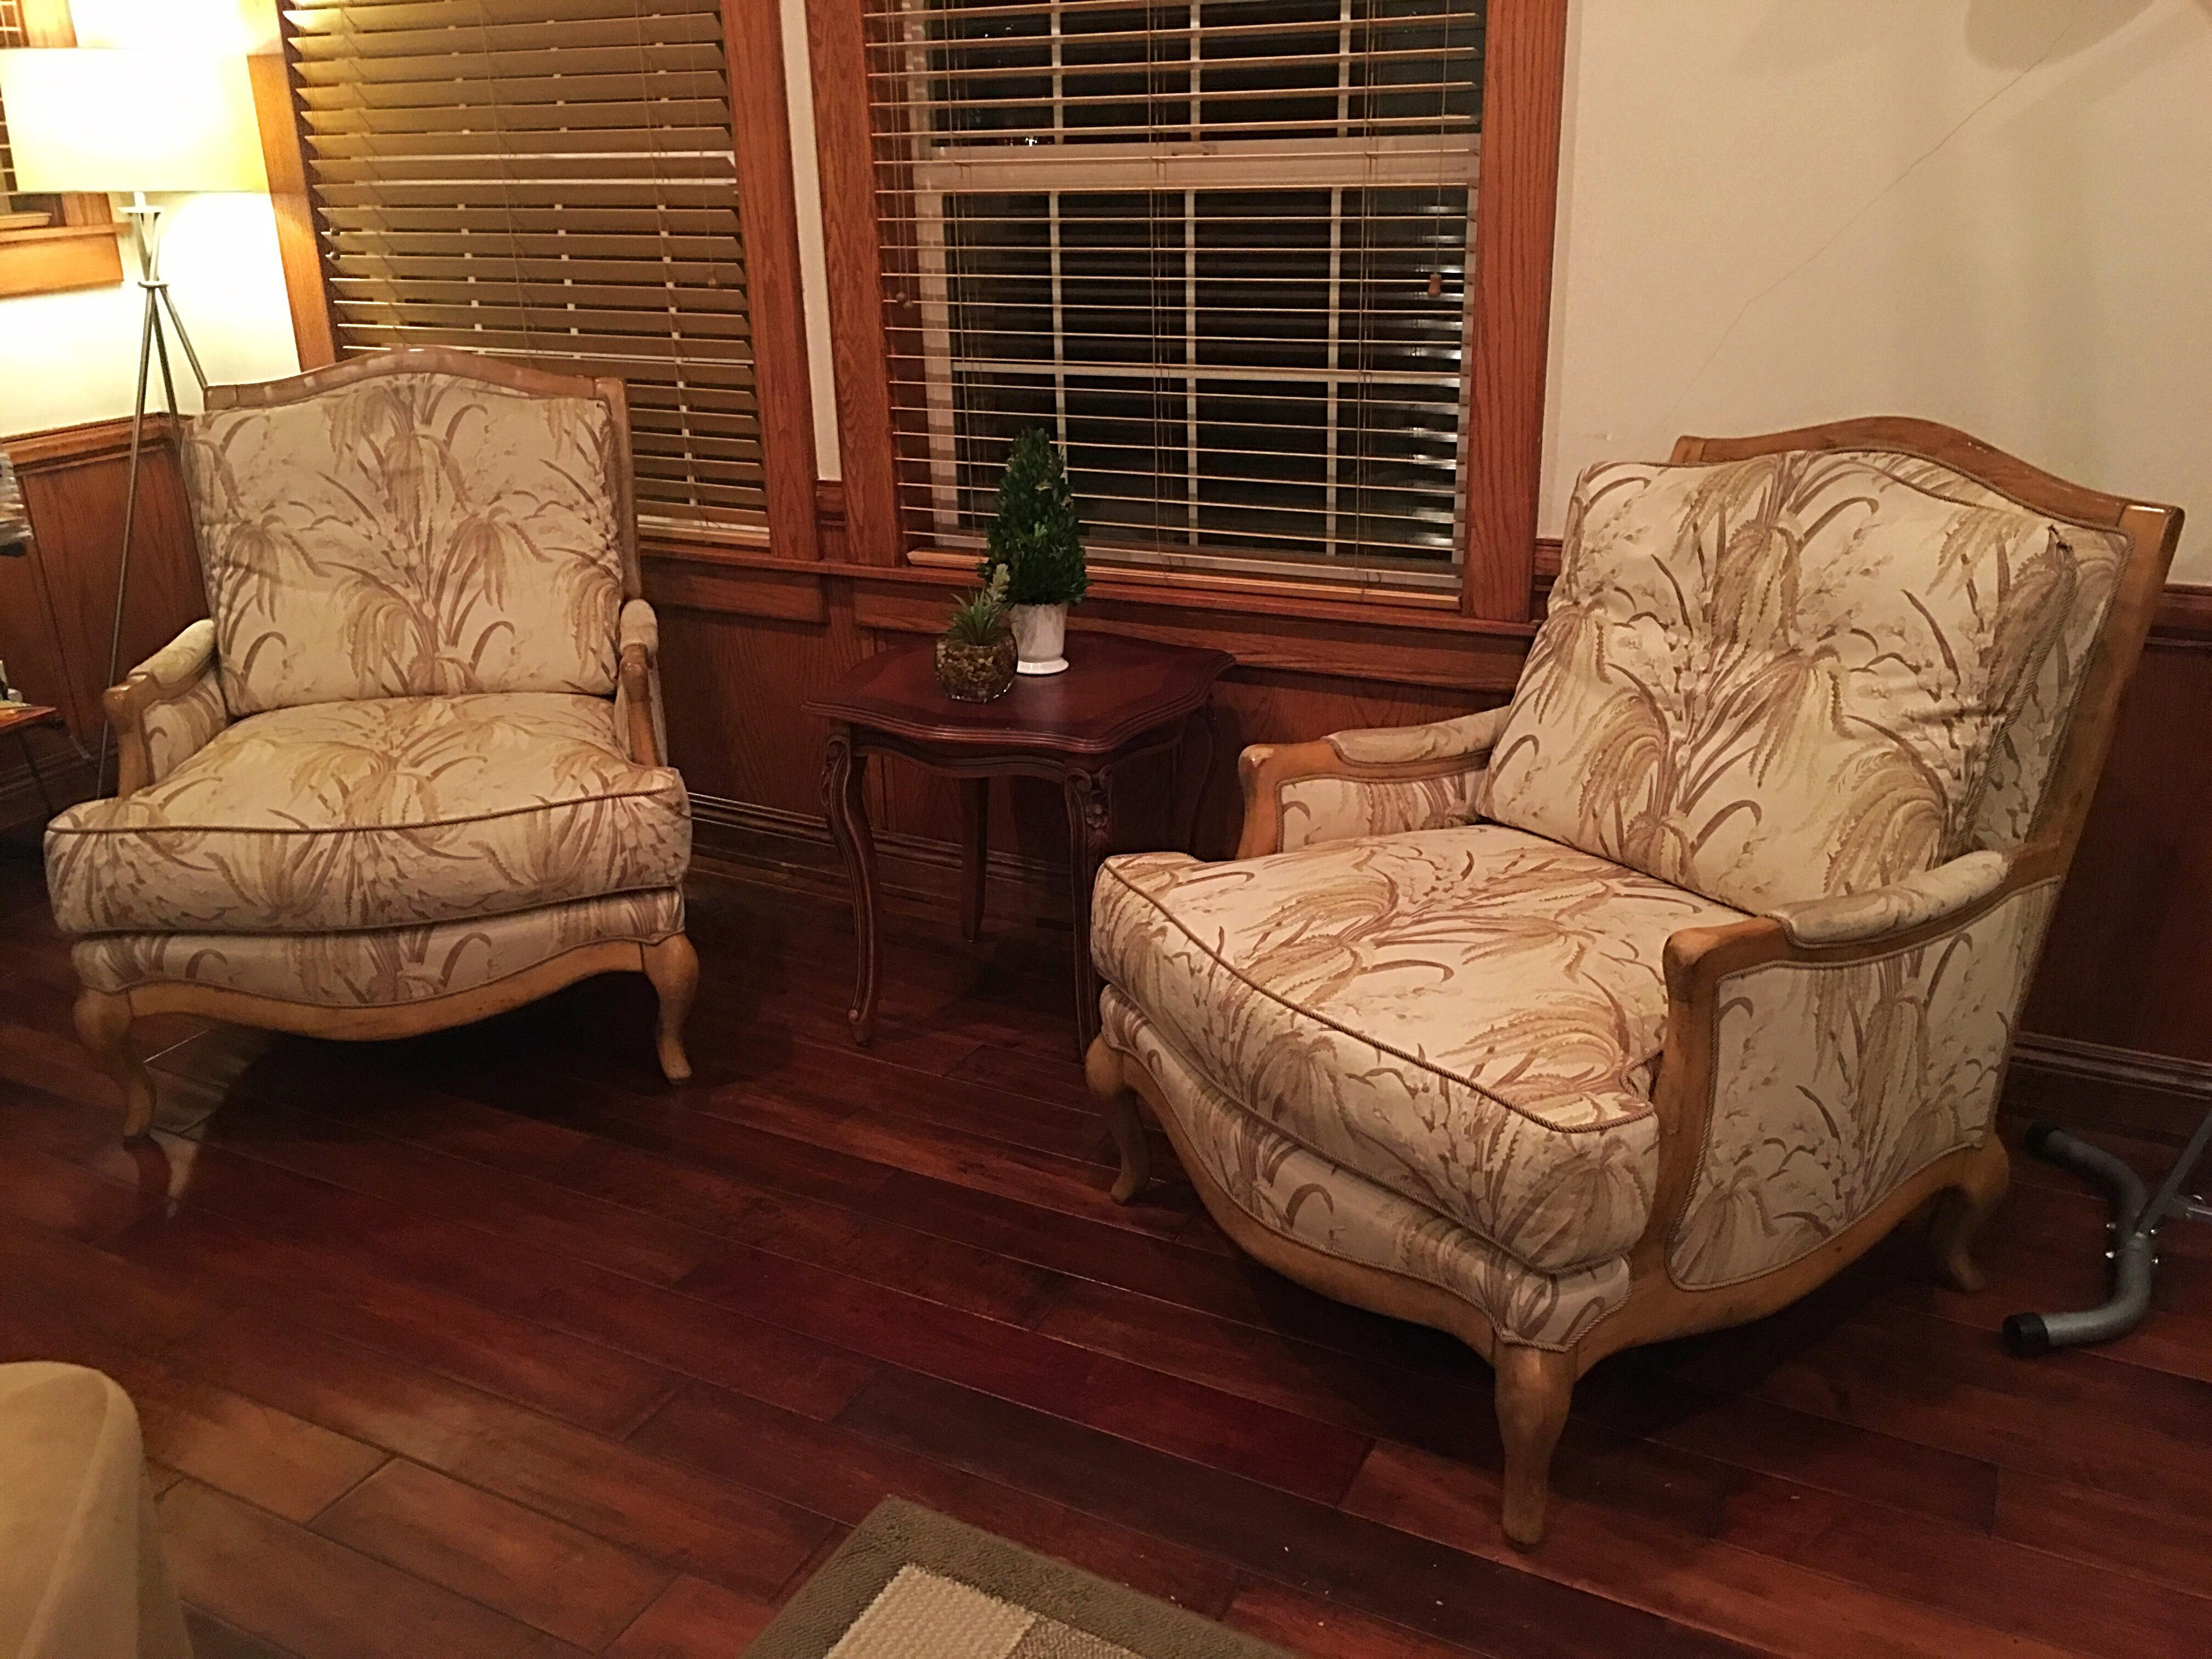 Crafted Swaim Wood Fabric Down Filled Club Chairs - A Pair - Image 7 of 7  sc 1 st  Chairish & Crafted Swaim Wood Fabric Down Filled Club Chairs - A Pair | Chairish